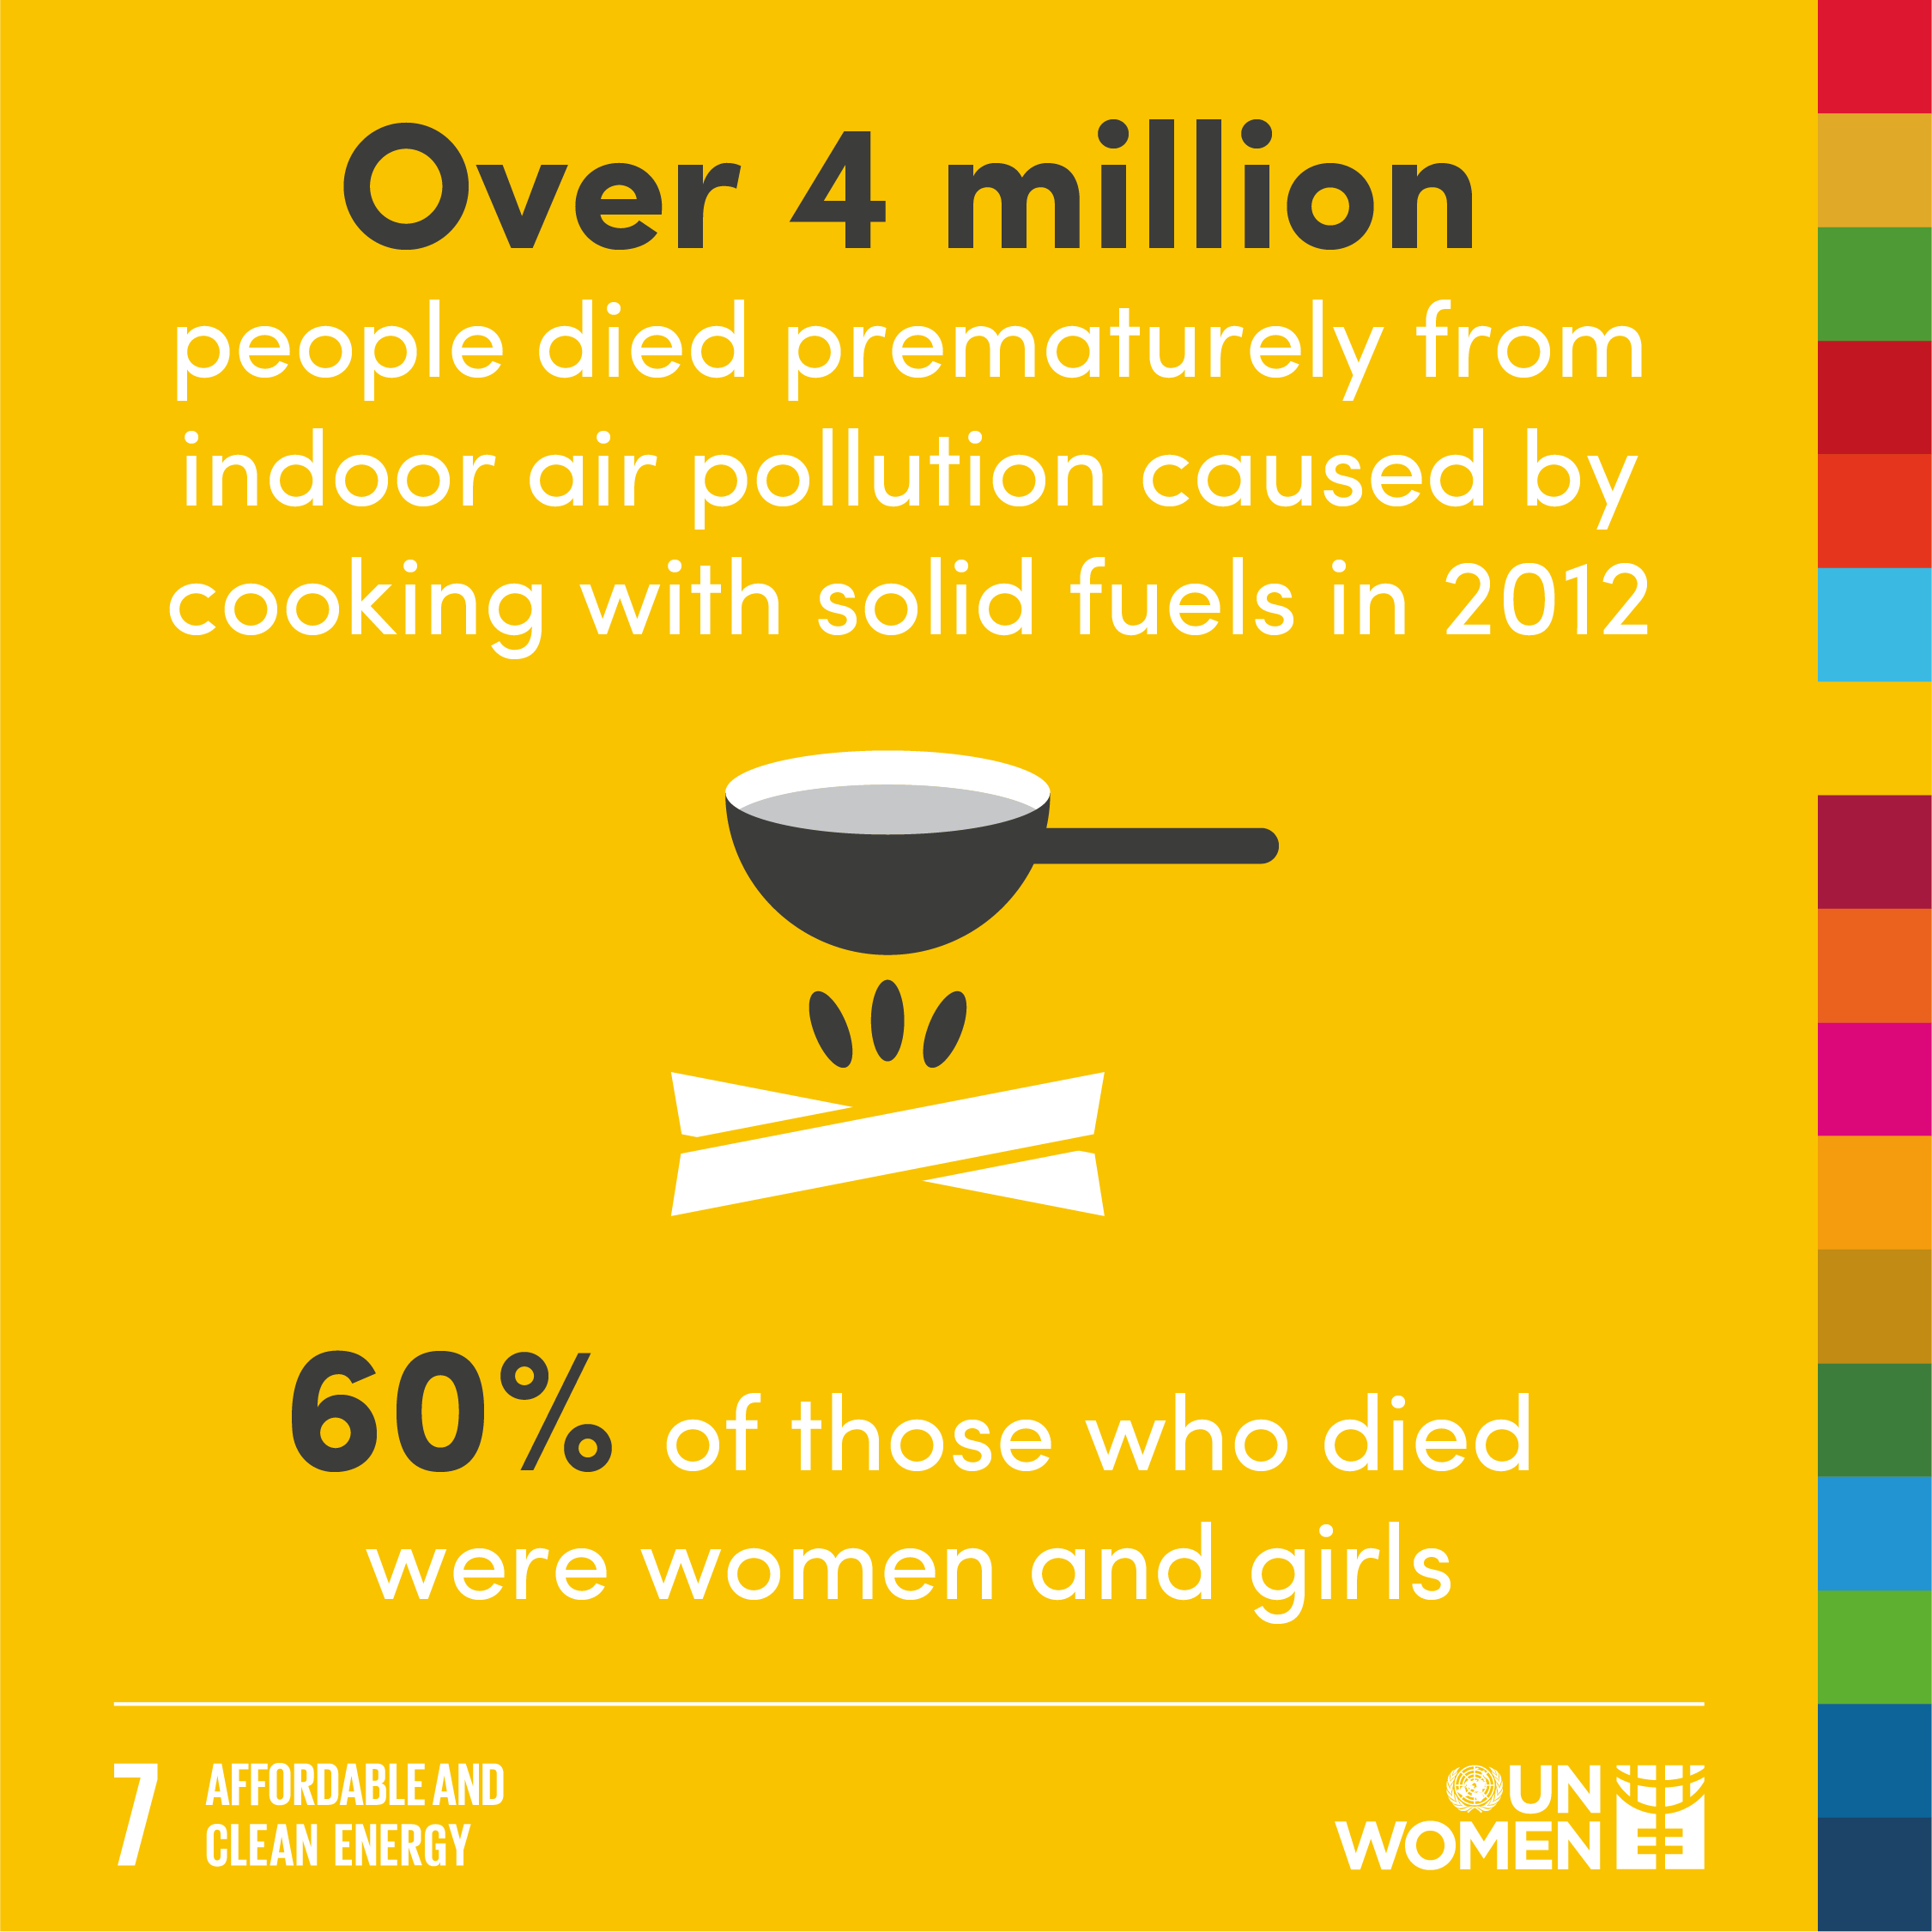 Over 4 million people died prematurely from indoor air pollution caused by cooking with solid fuels in 2012. 60% of those who died were women and girls.